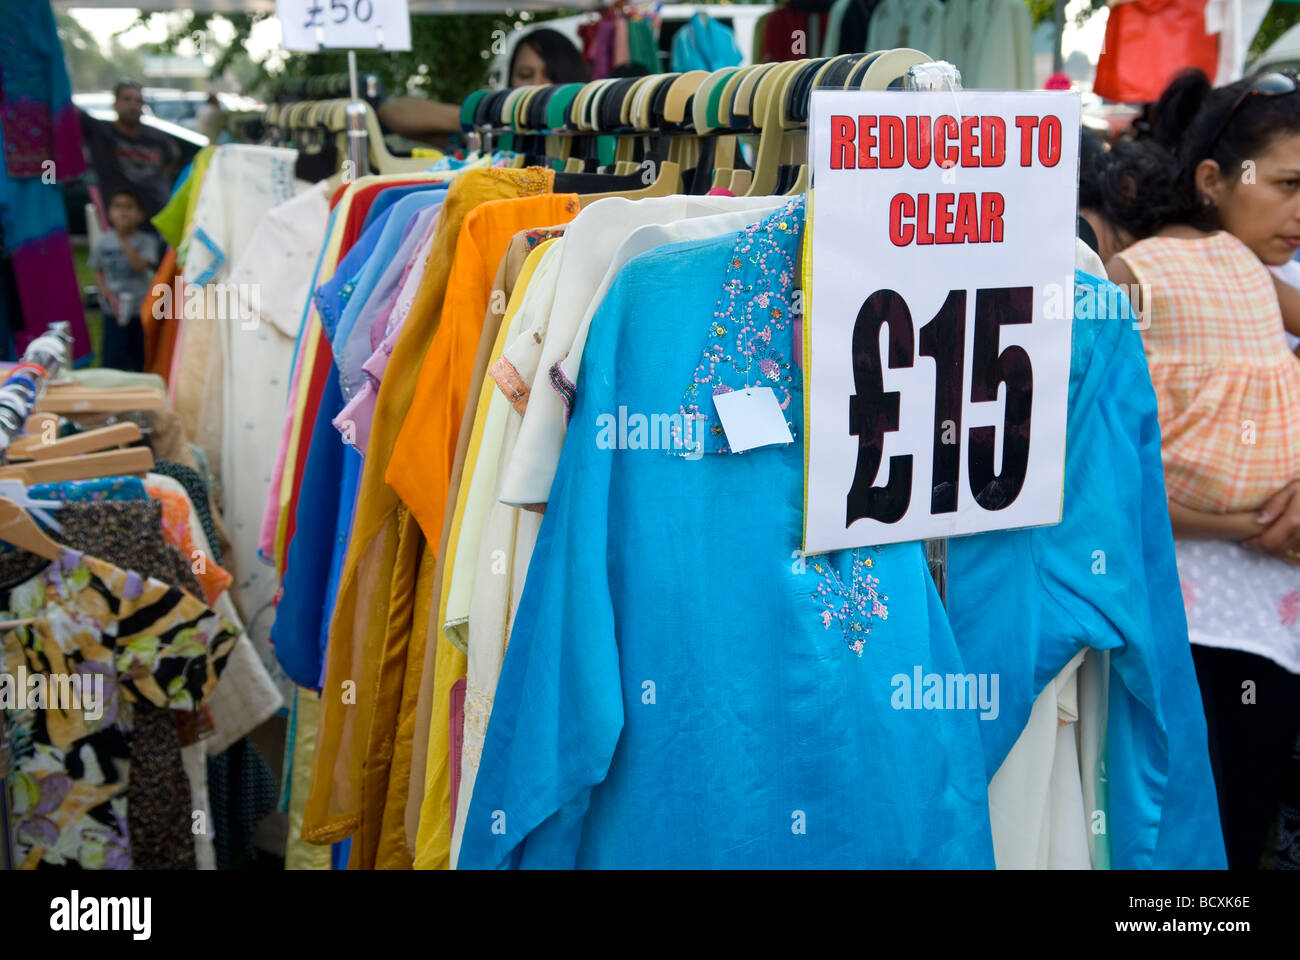 41a47d3ad0 Clothes on sale in the Mela Asian event in Manchester UK Stock Photo ...